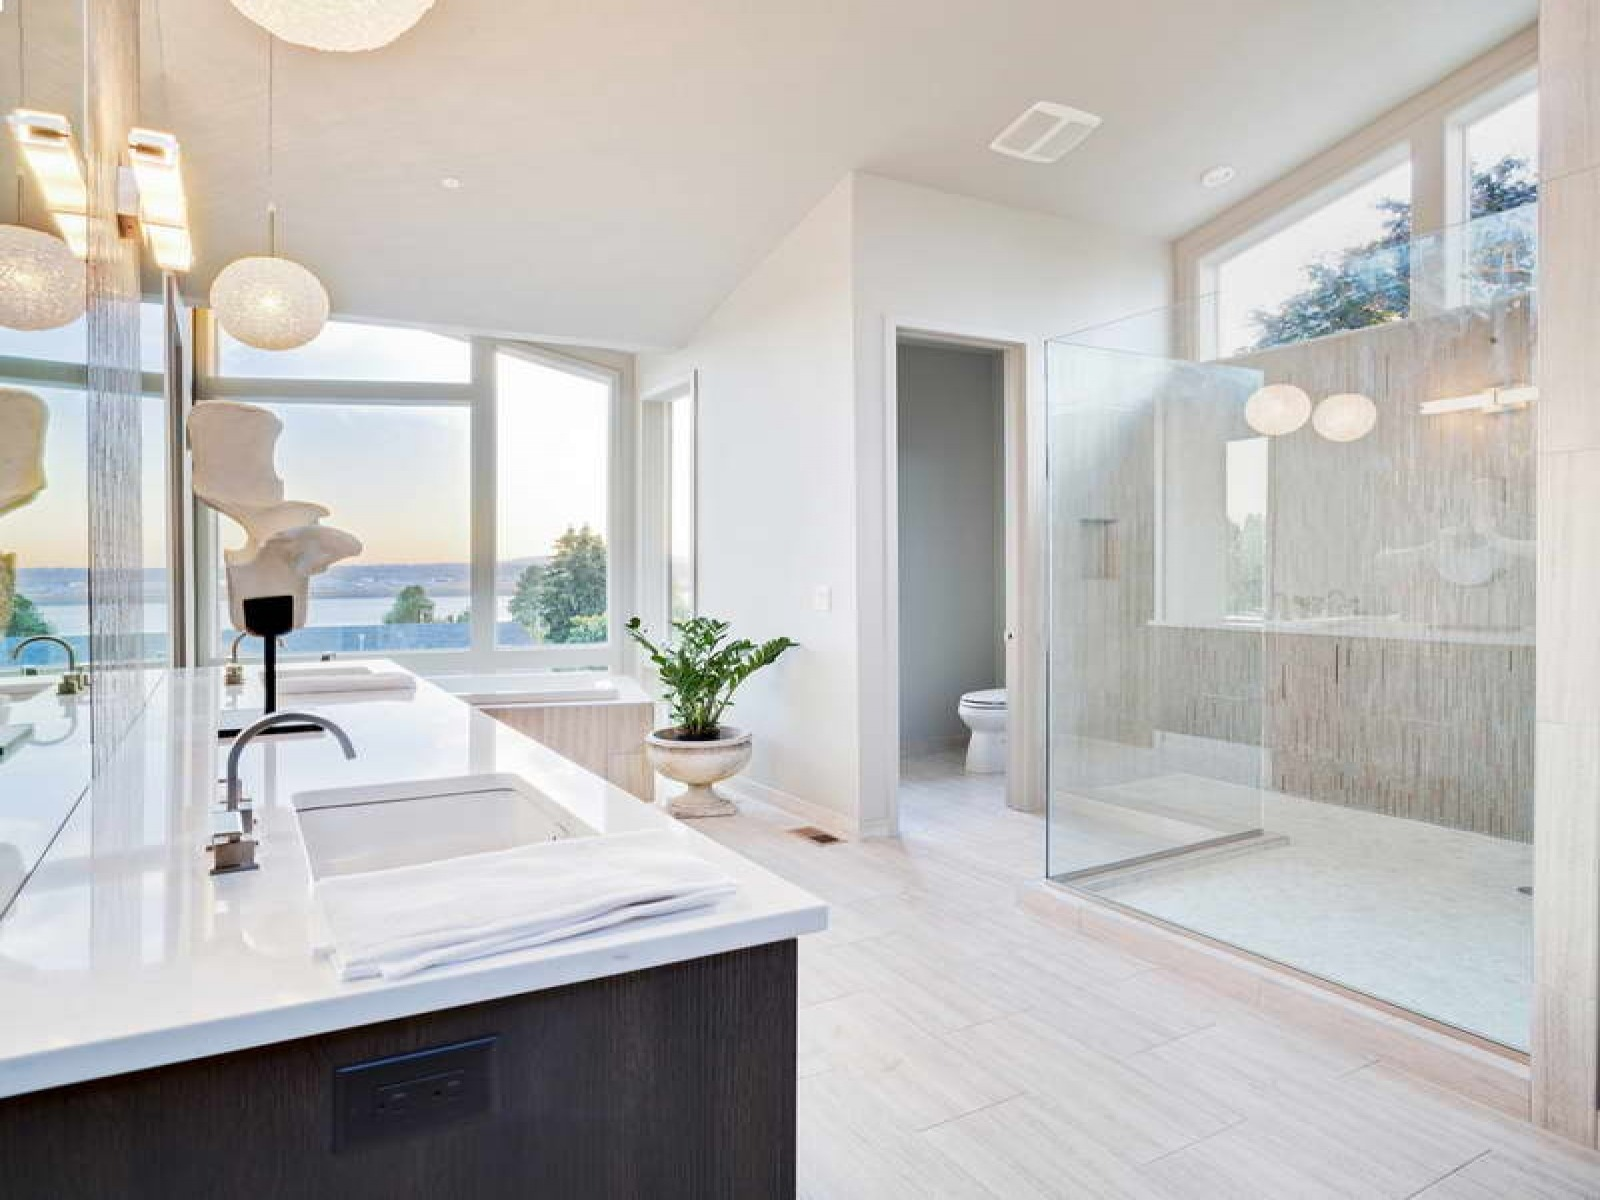 Bathroom Upgrades That Are Worth The Cost: